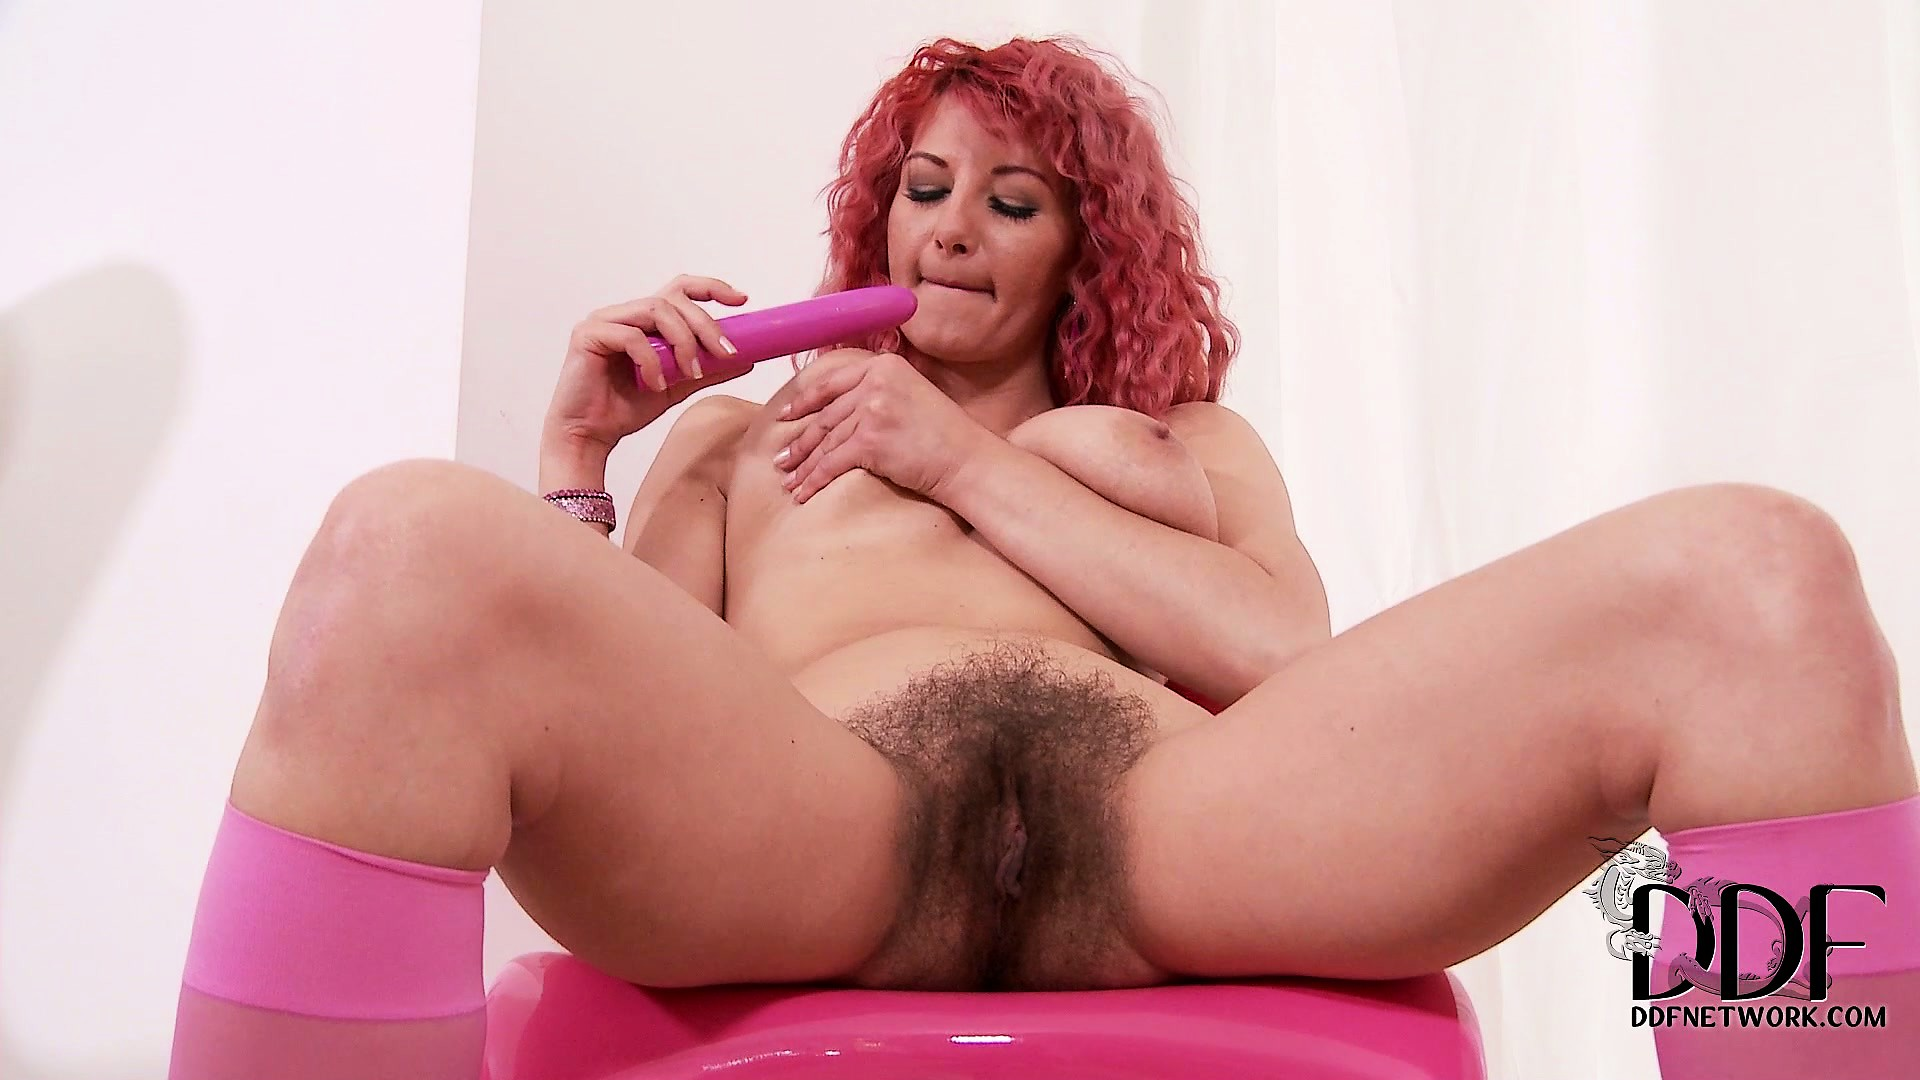 Porn Tube of The Hot Redhead Looks Good In Pink, Her Natural Pussy Does Too